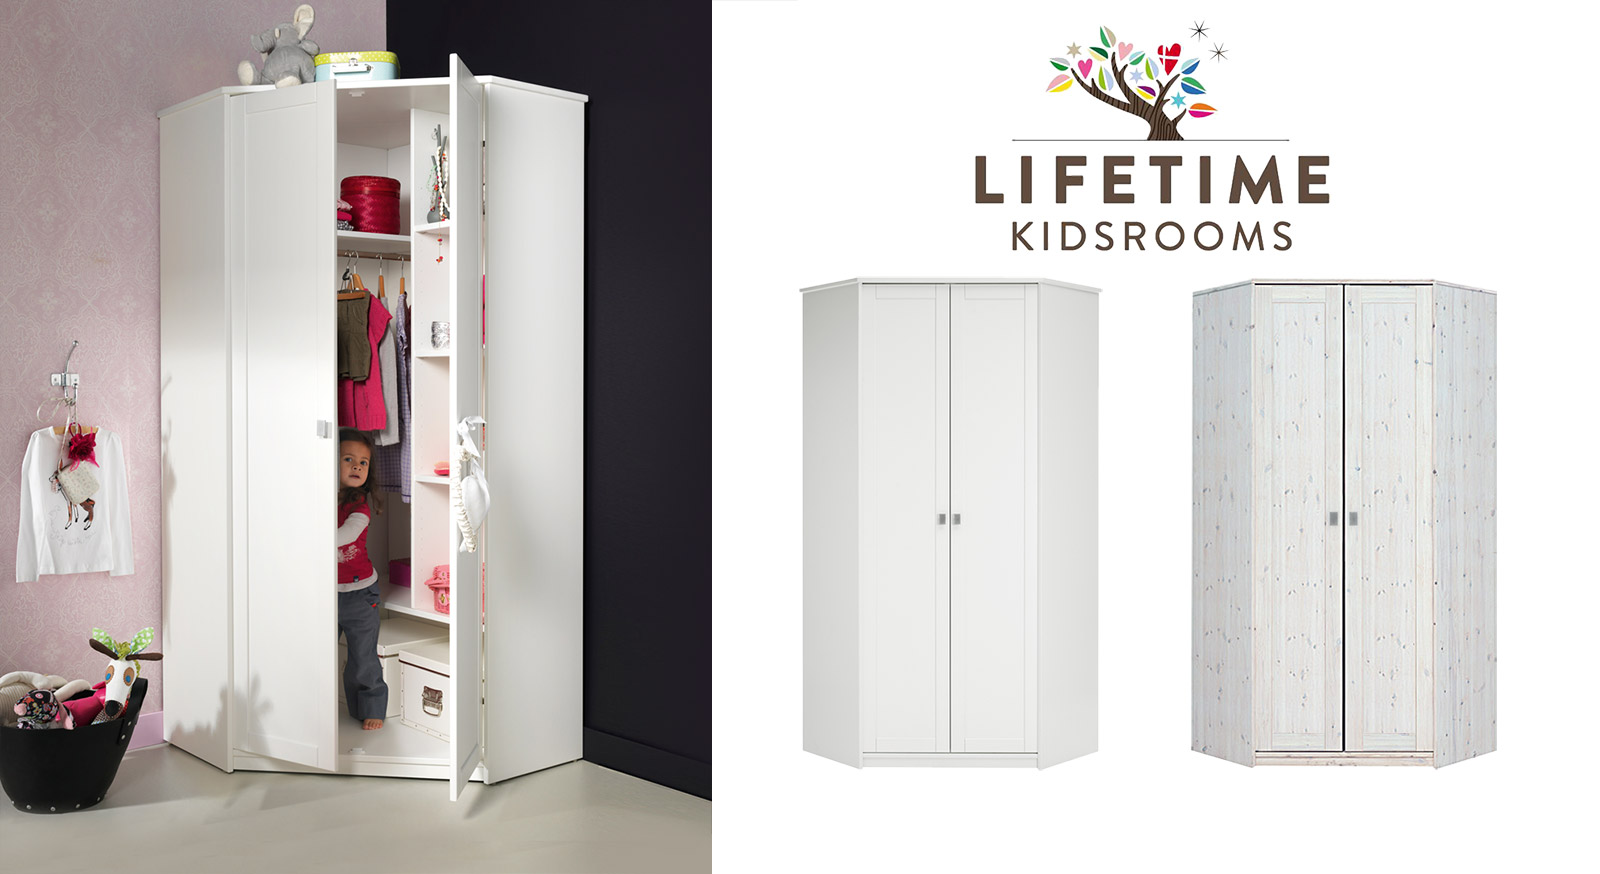 wei er eck kleiderschrank von lifetime f r kinder. Black Bedroom Furniture Sets. Home Design Ideas